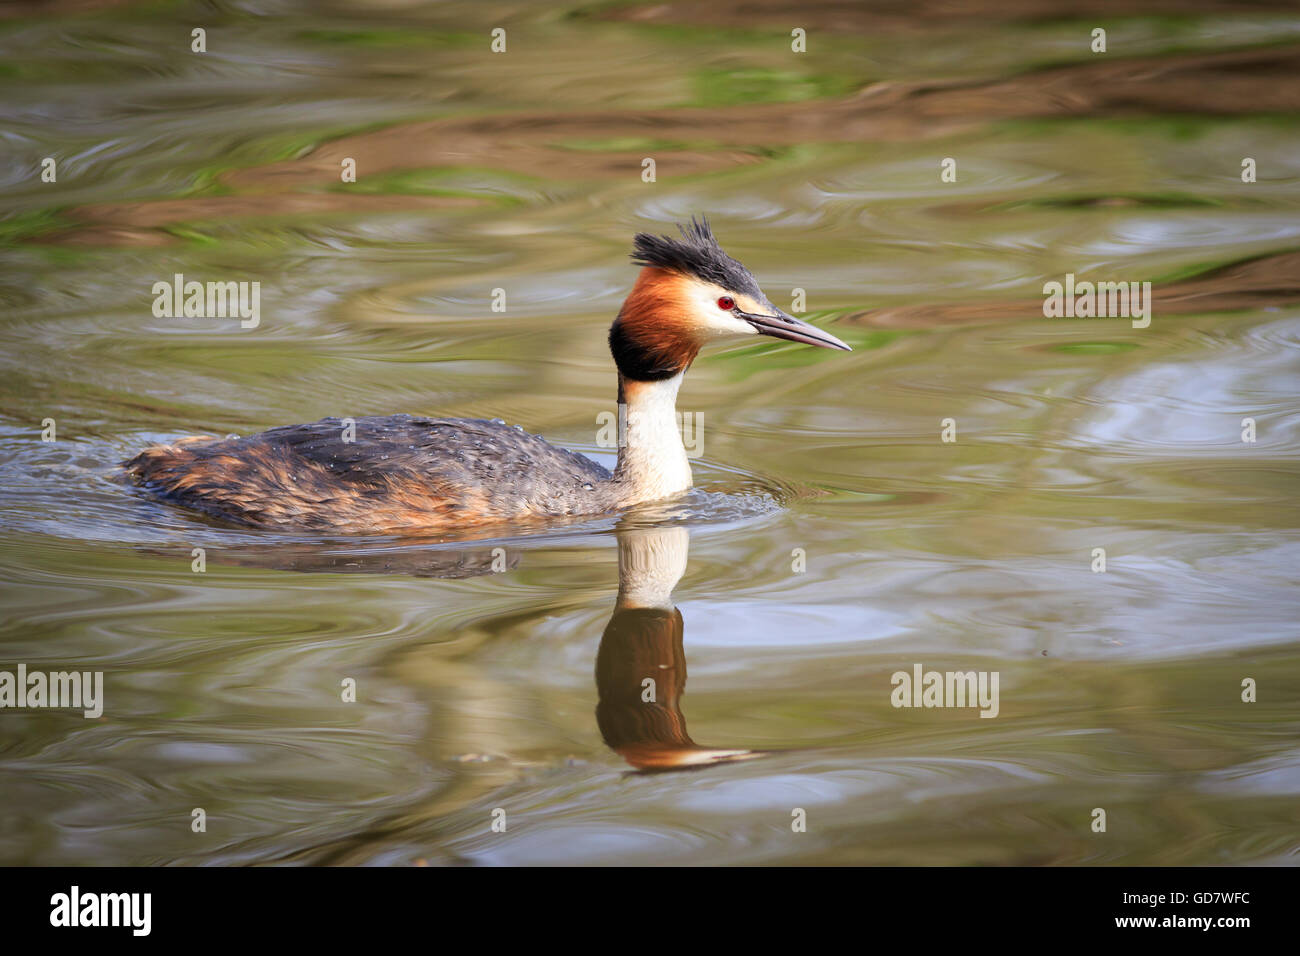 Great crested grebe  swimming on the lake - Stock Image